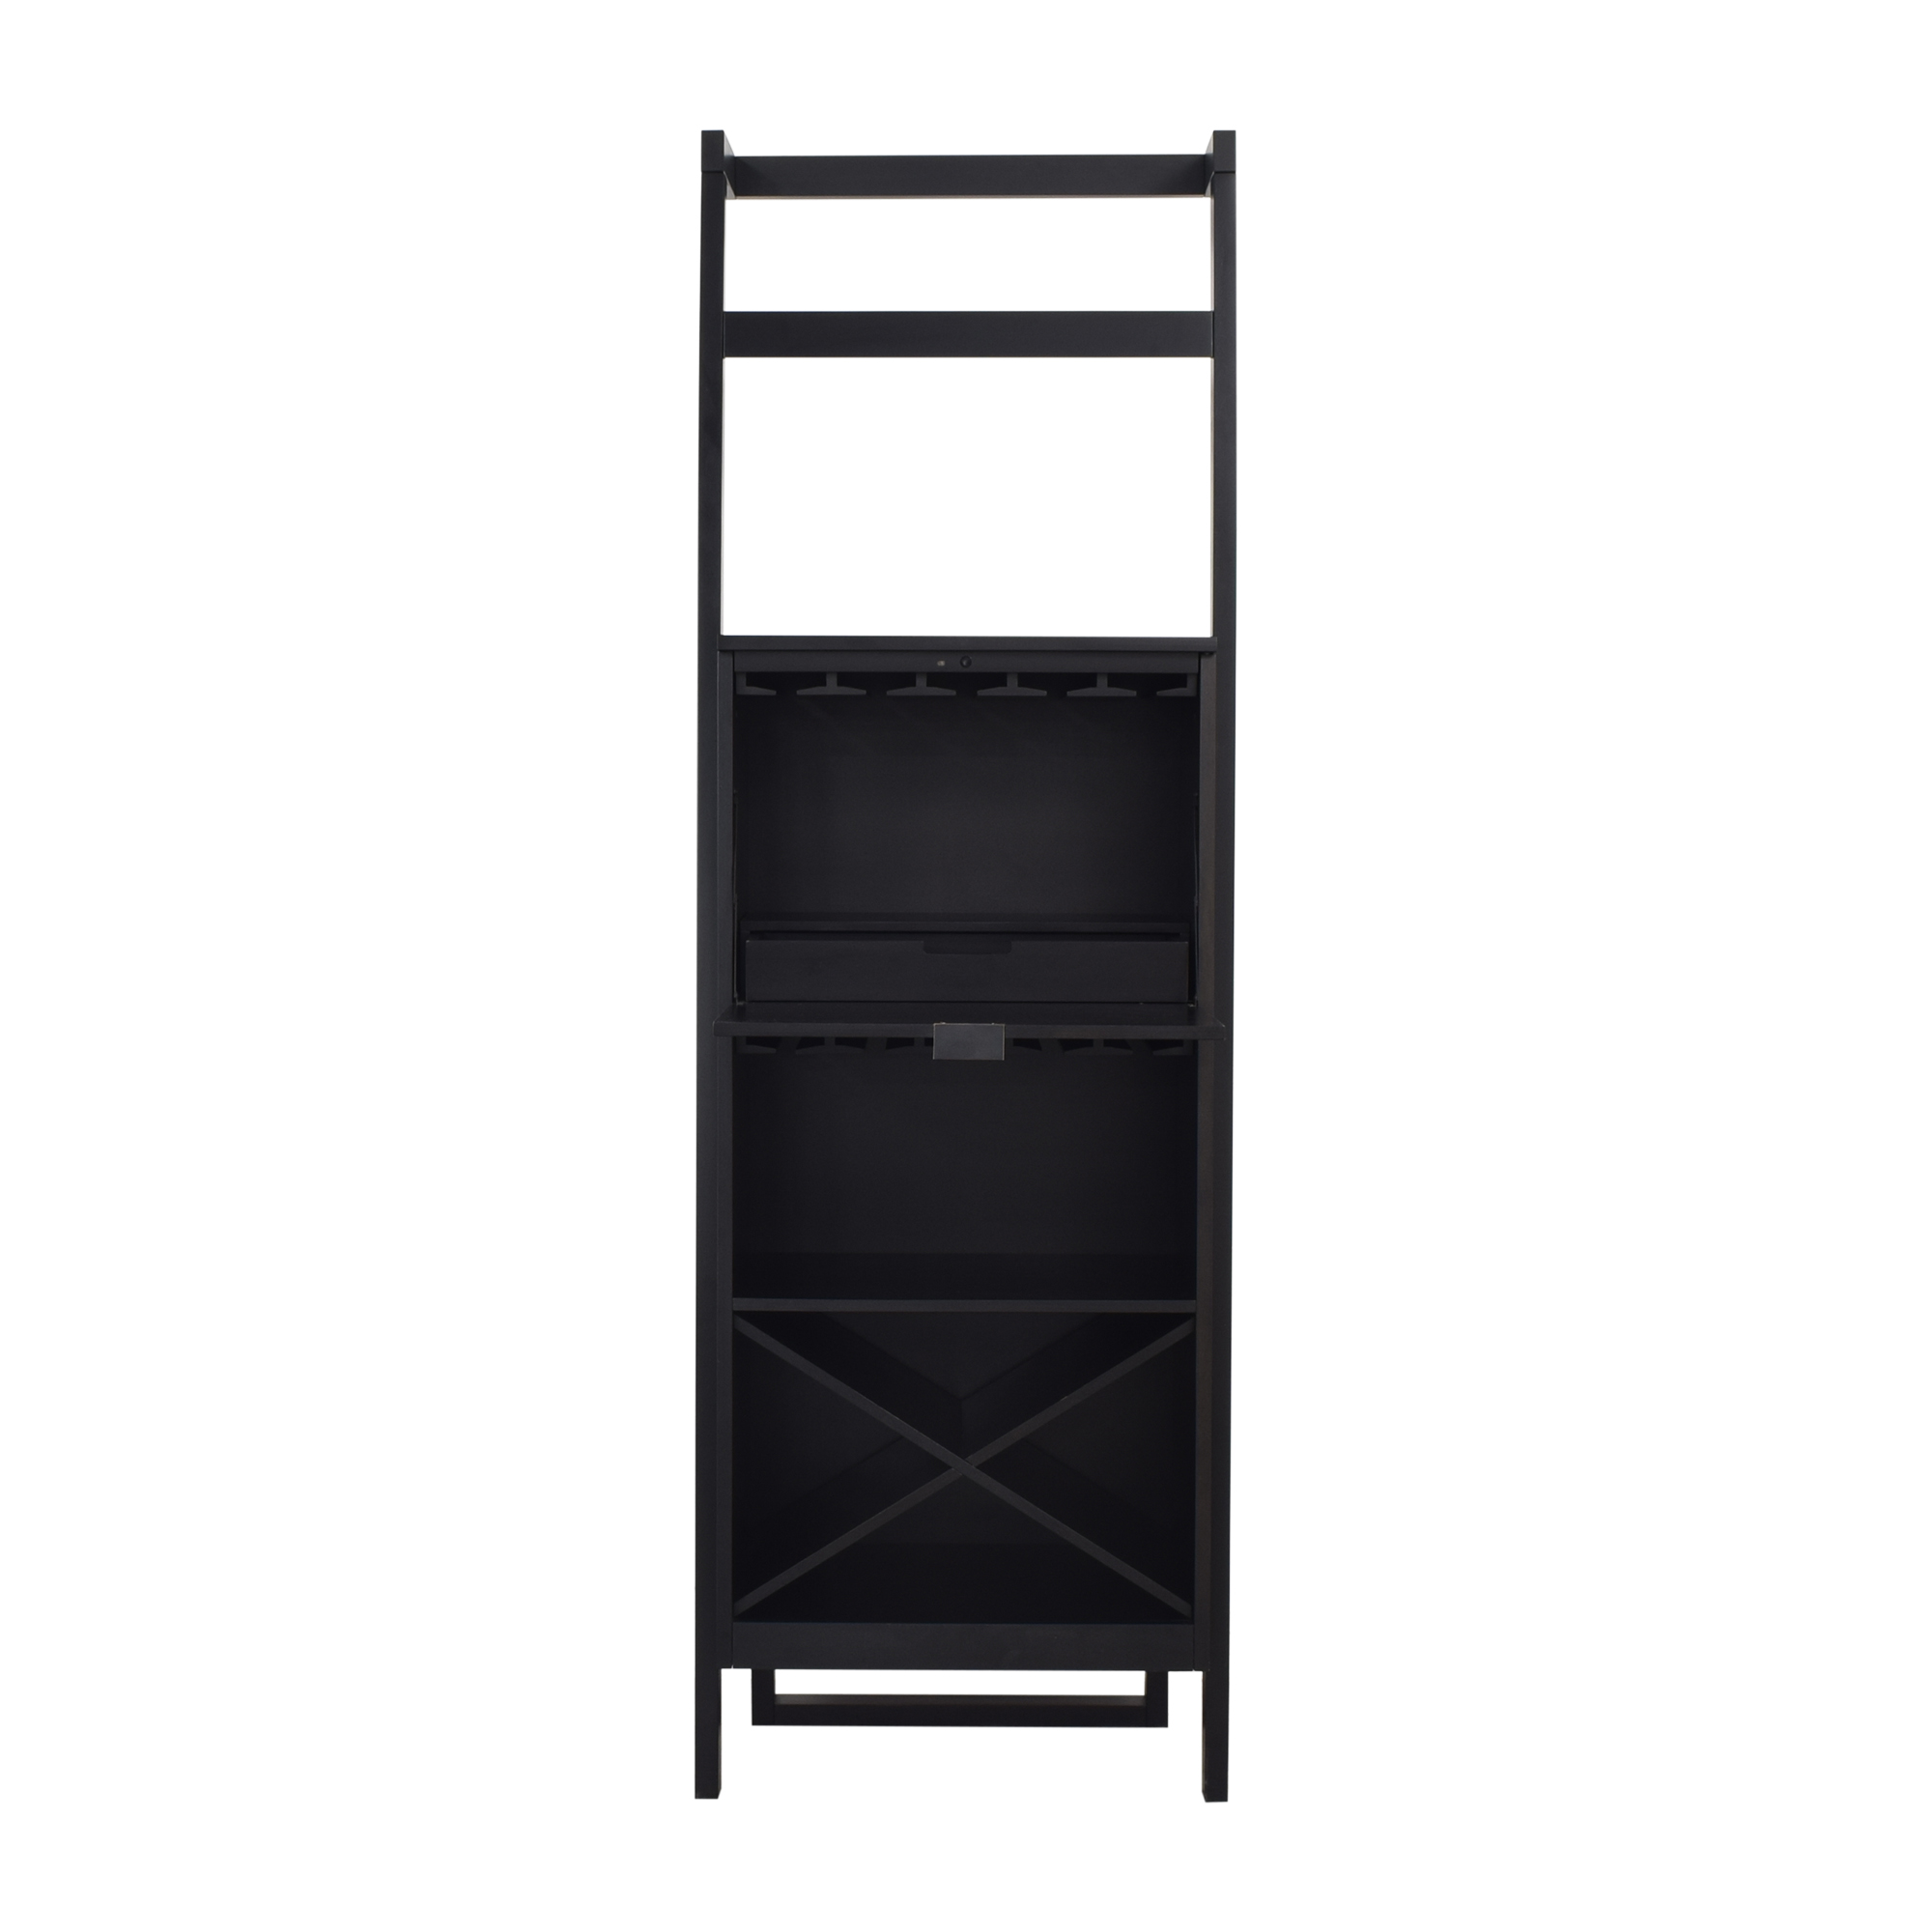 Crate & Barrel Crate & Barrel Sawyer Leaning Wine Bar Cabinets & Sideboards